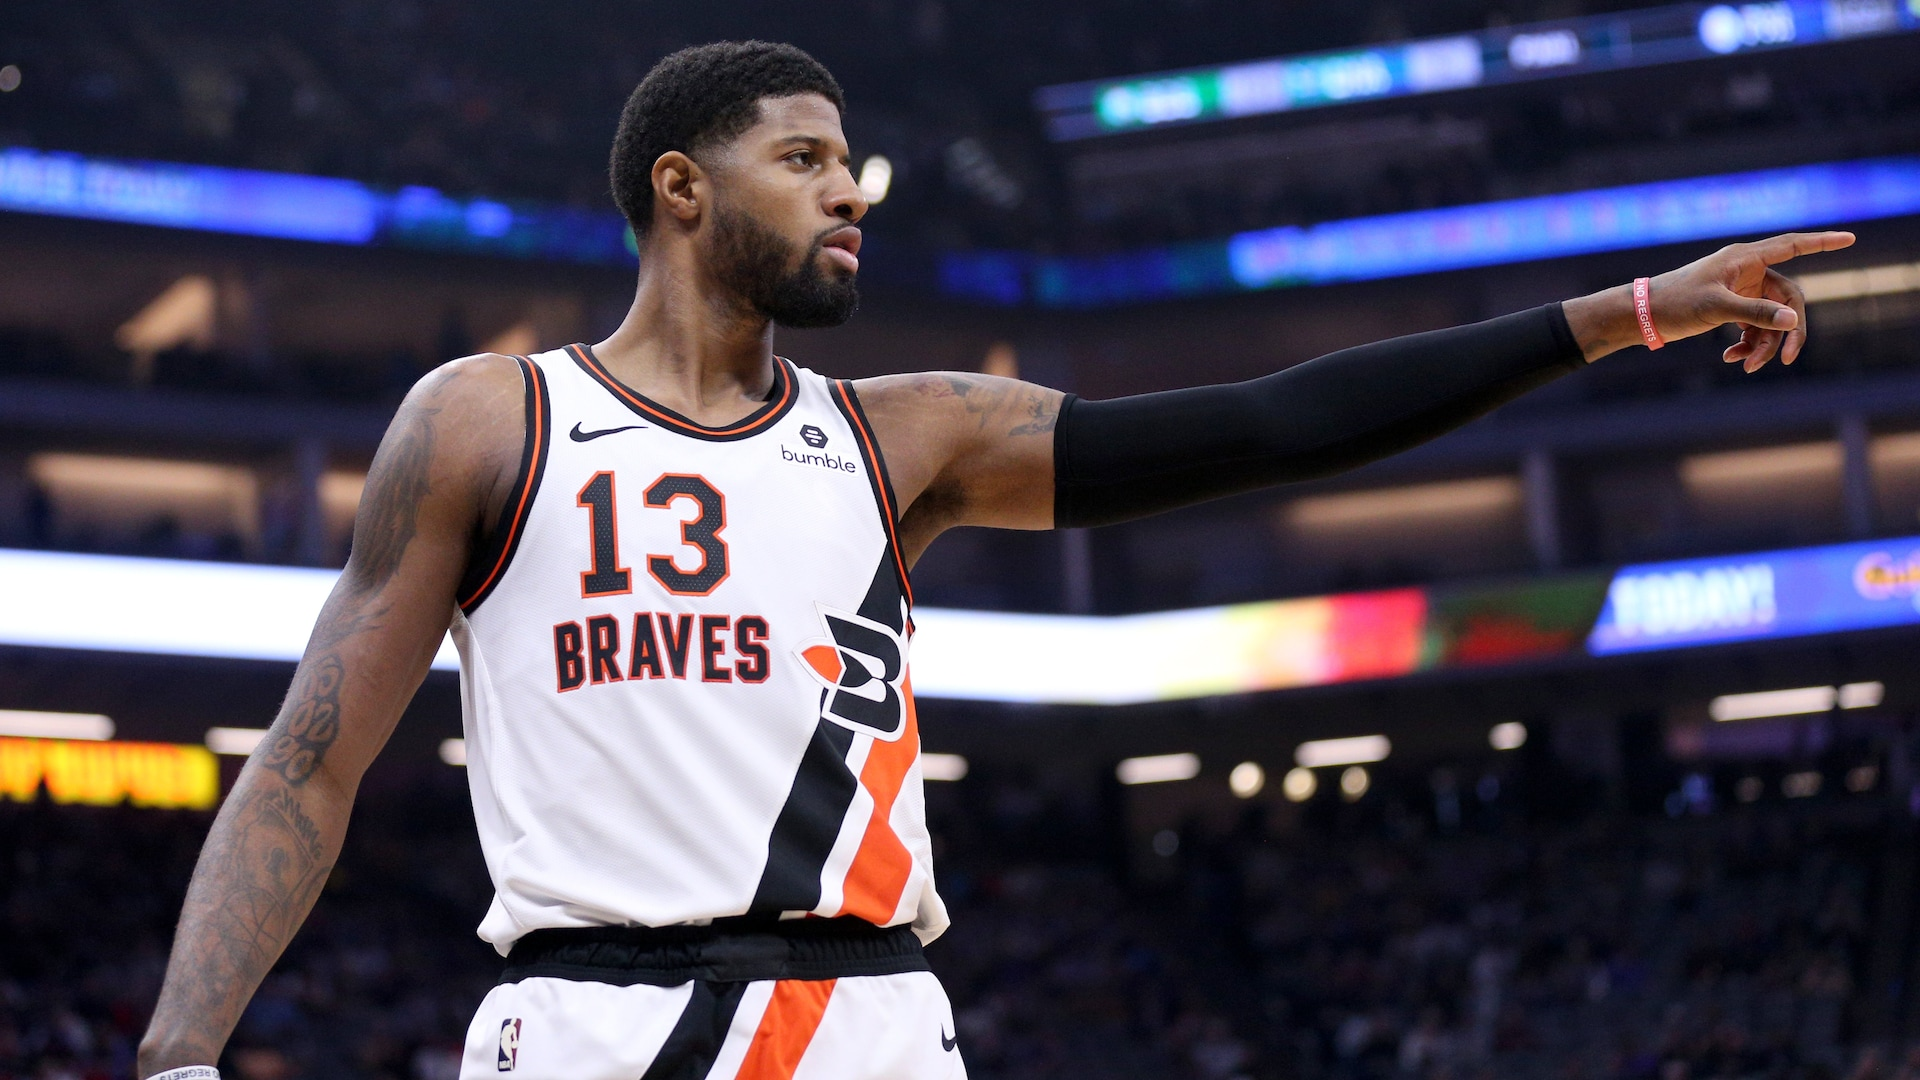 Clippers' Paul George sits out because of tight hamstring